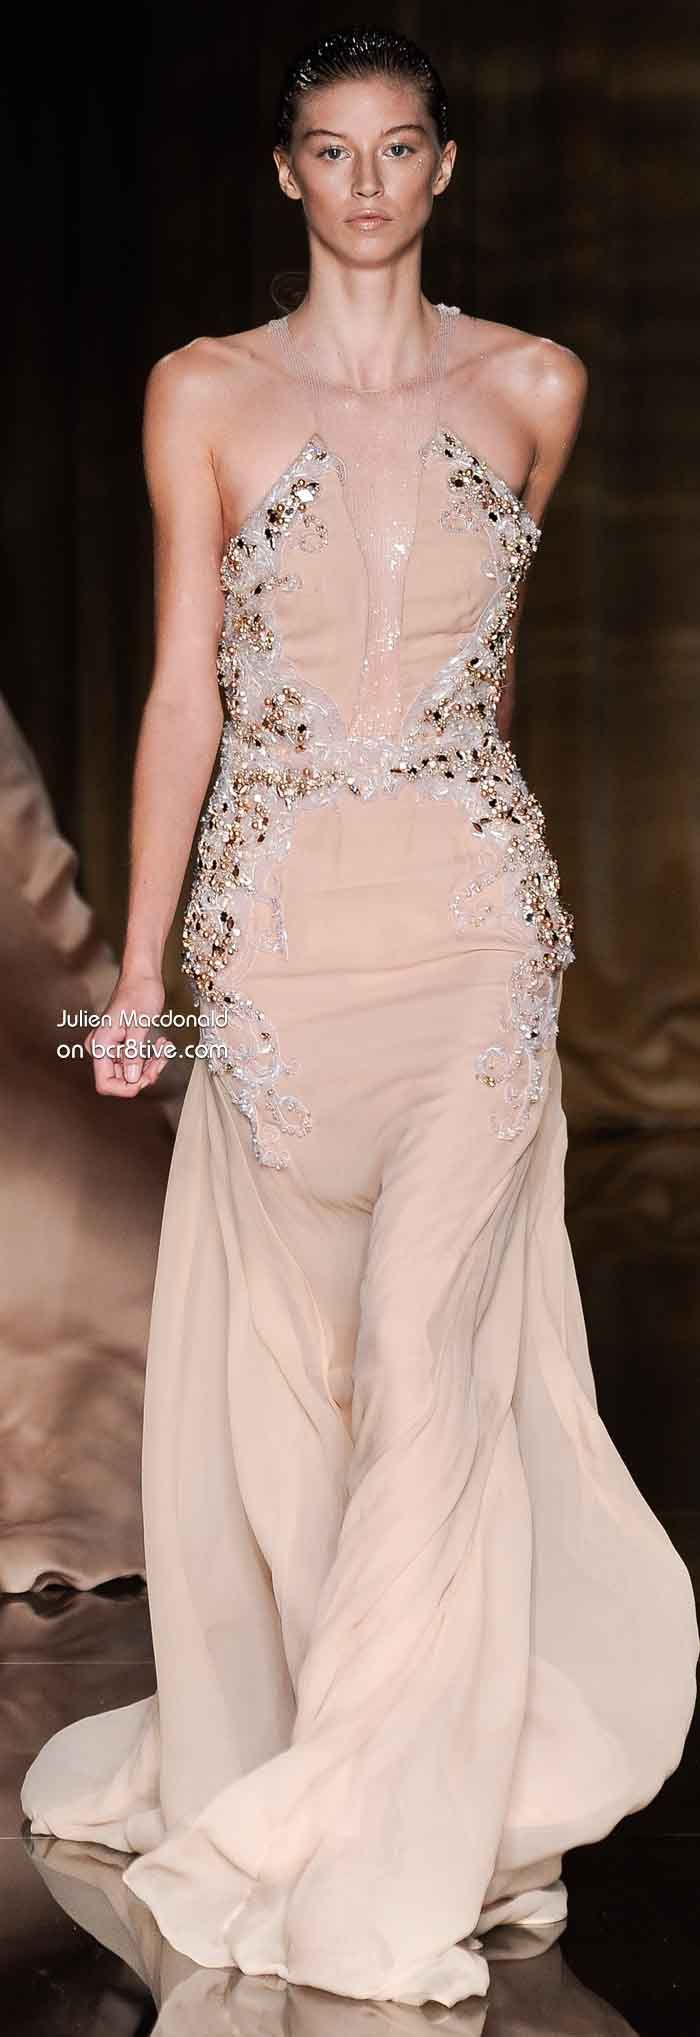 Julien Macdonald Spring 2014 | Nude and Champagne | Pinterest ...